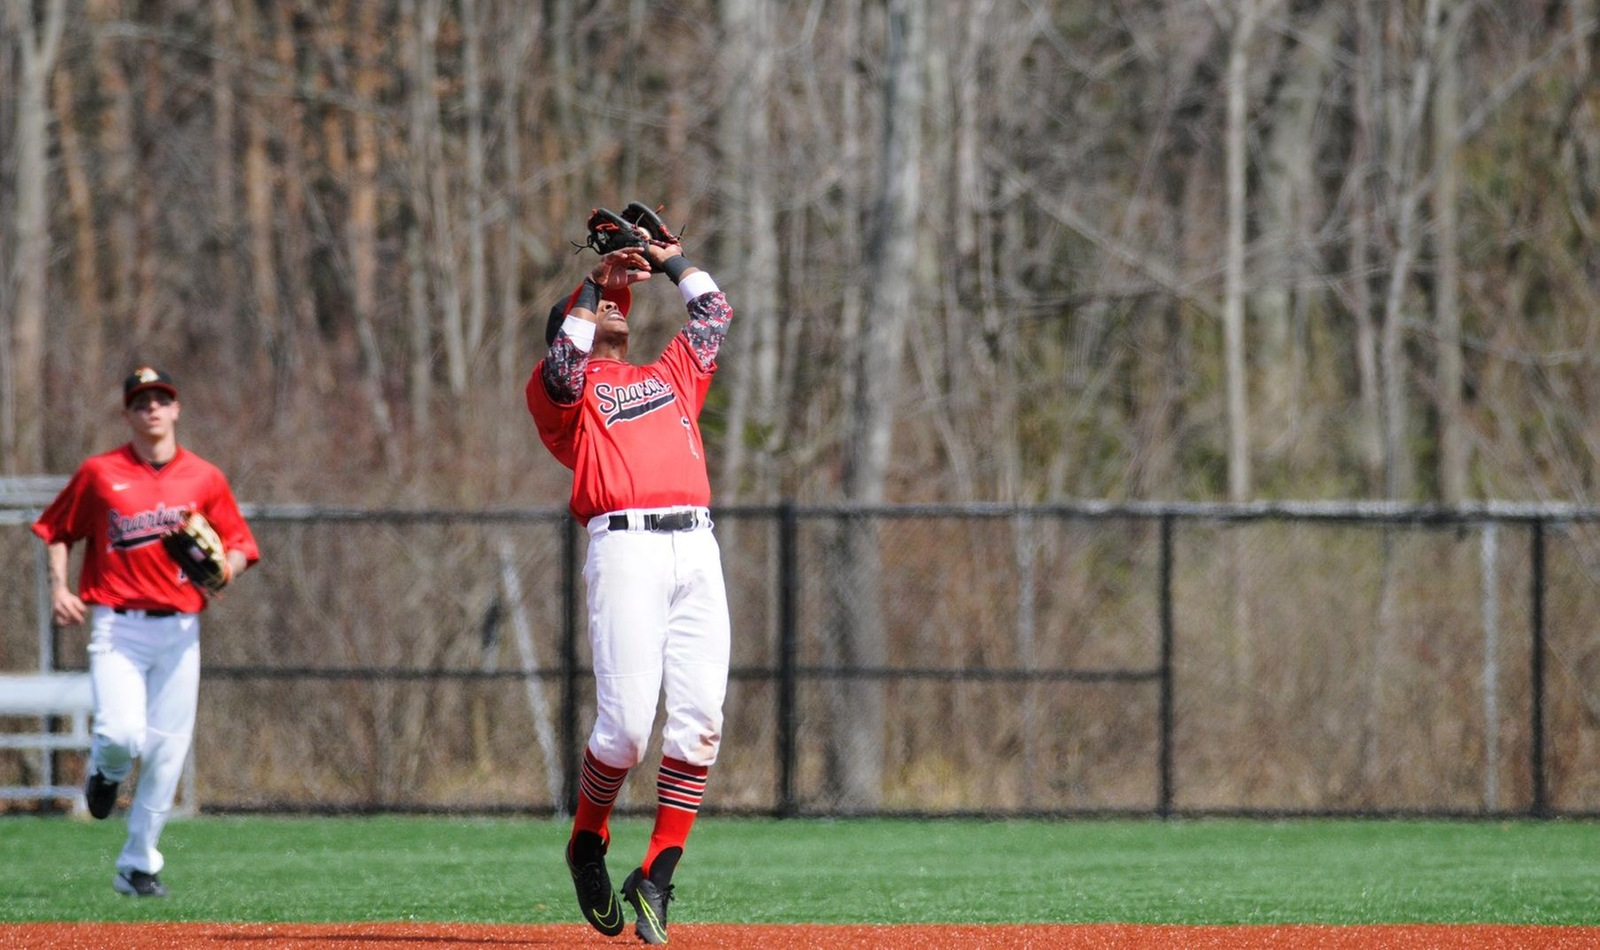 Maryland Trip Begins with Pair of Losses for Spartan Baseball